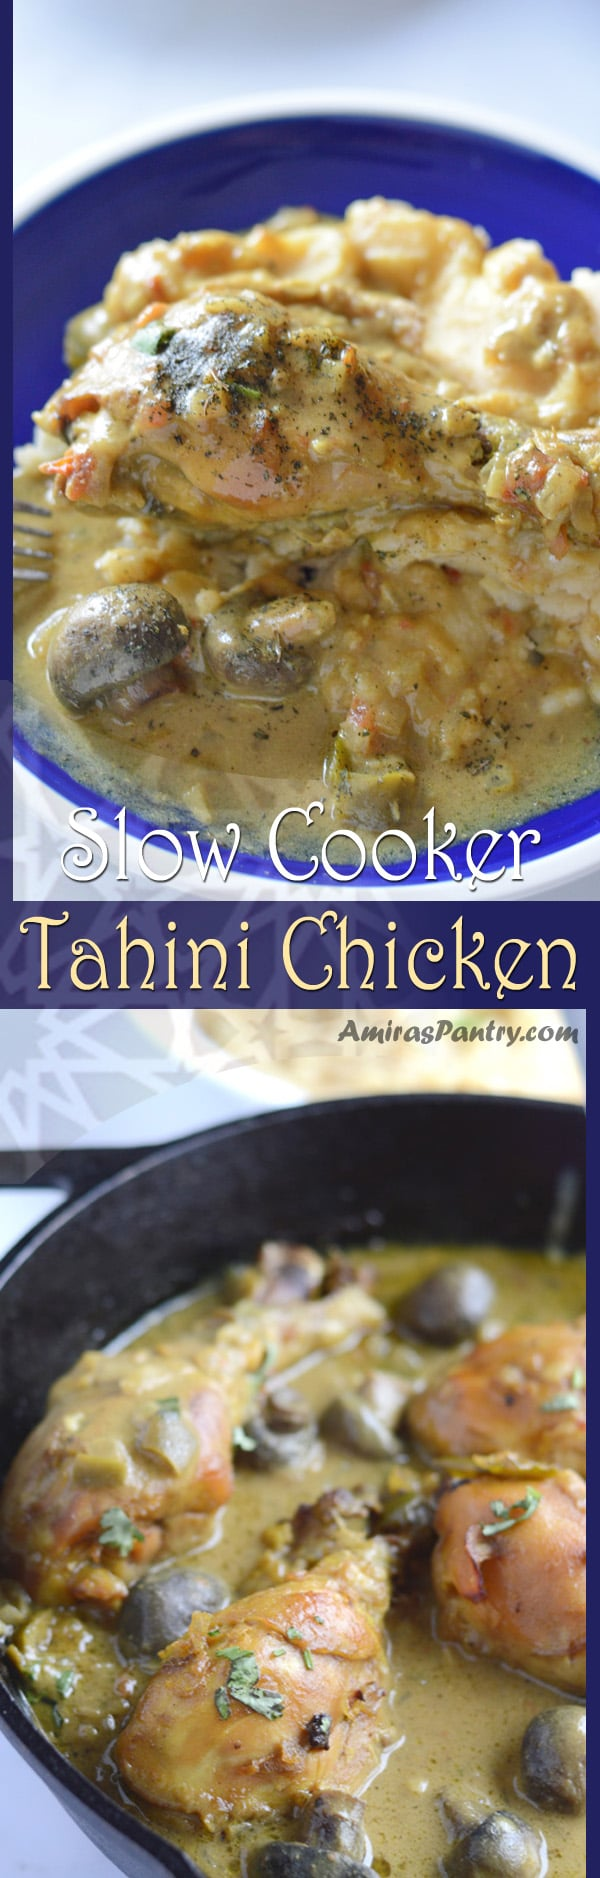 Tender, fall apart chicken swimming in a poodle of tahini sauce. Creamy, delicious and so simple. A Middle Eastern chicken recipe for serious eaters.